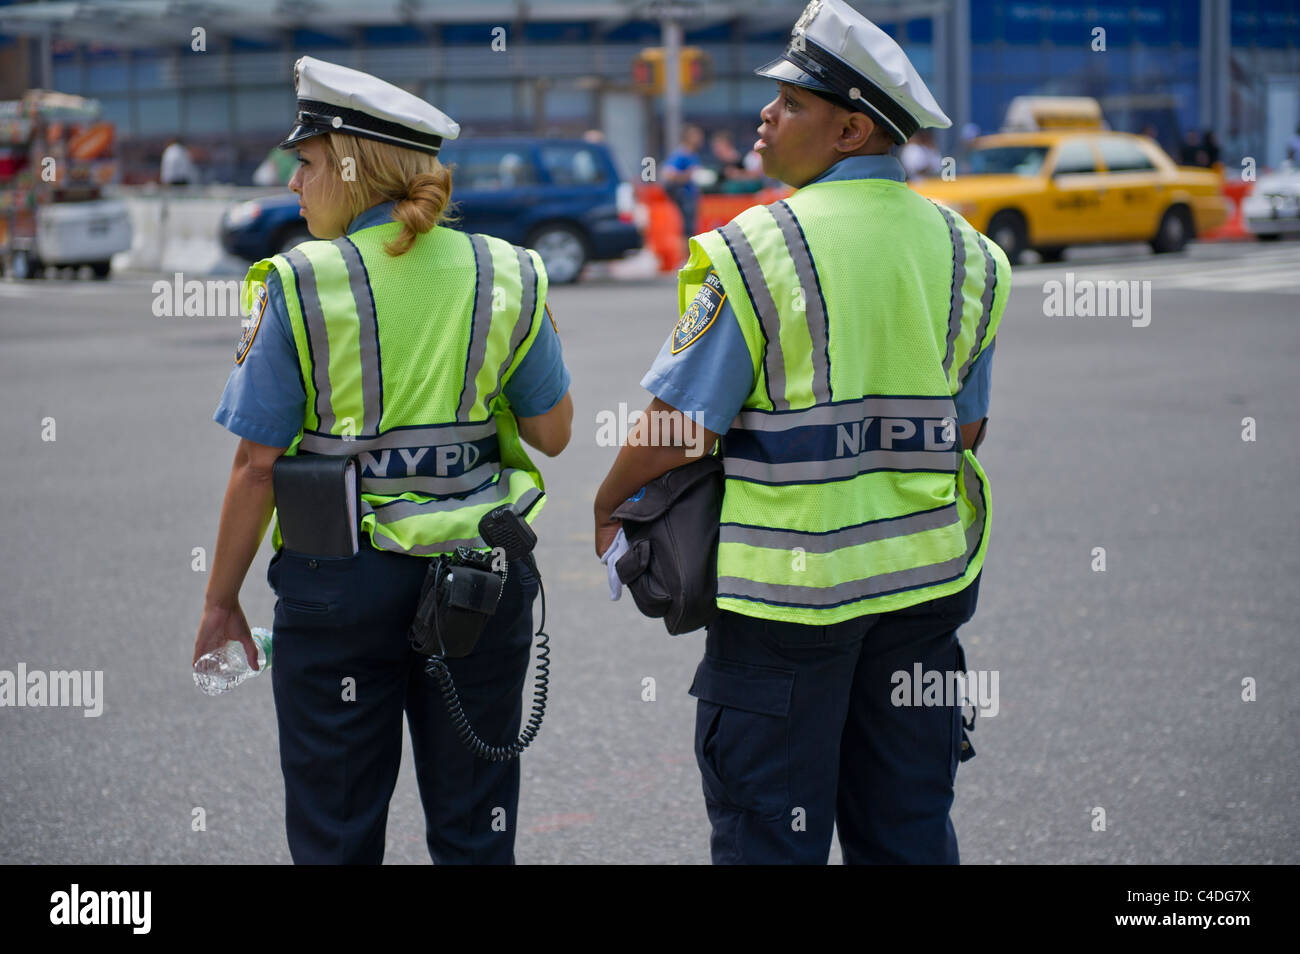 New York City Traffic Police Officers on duties, New York City, Manhattan, US. - Stock Image